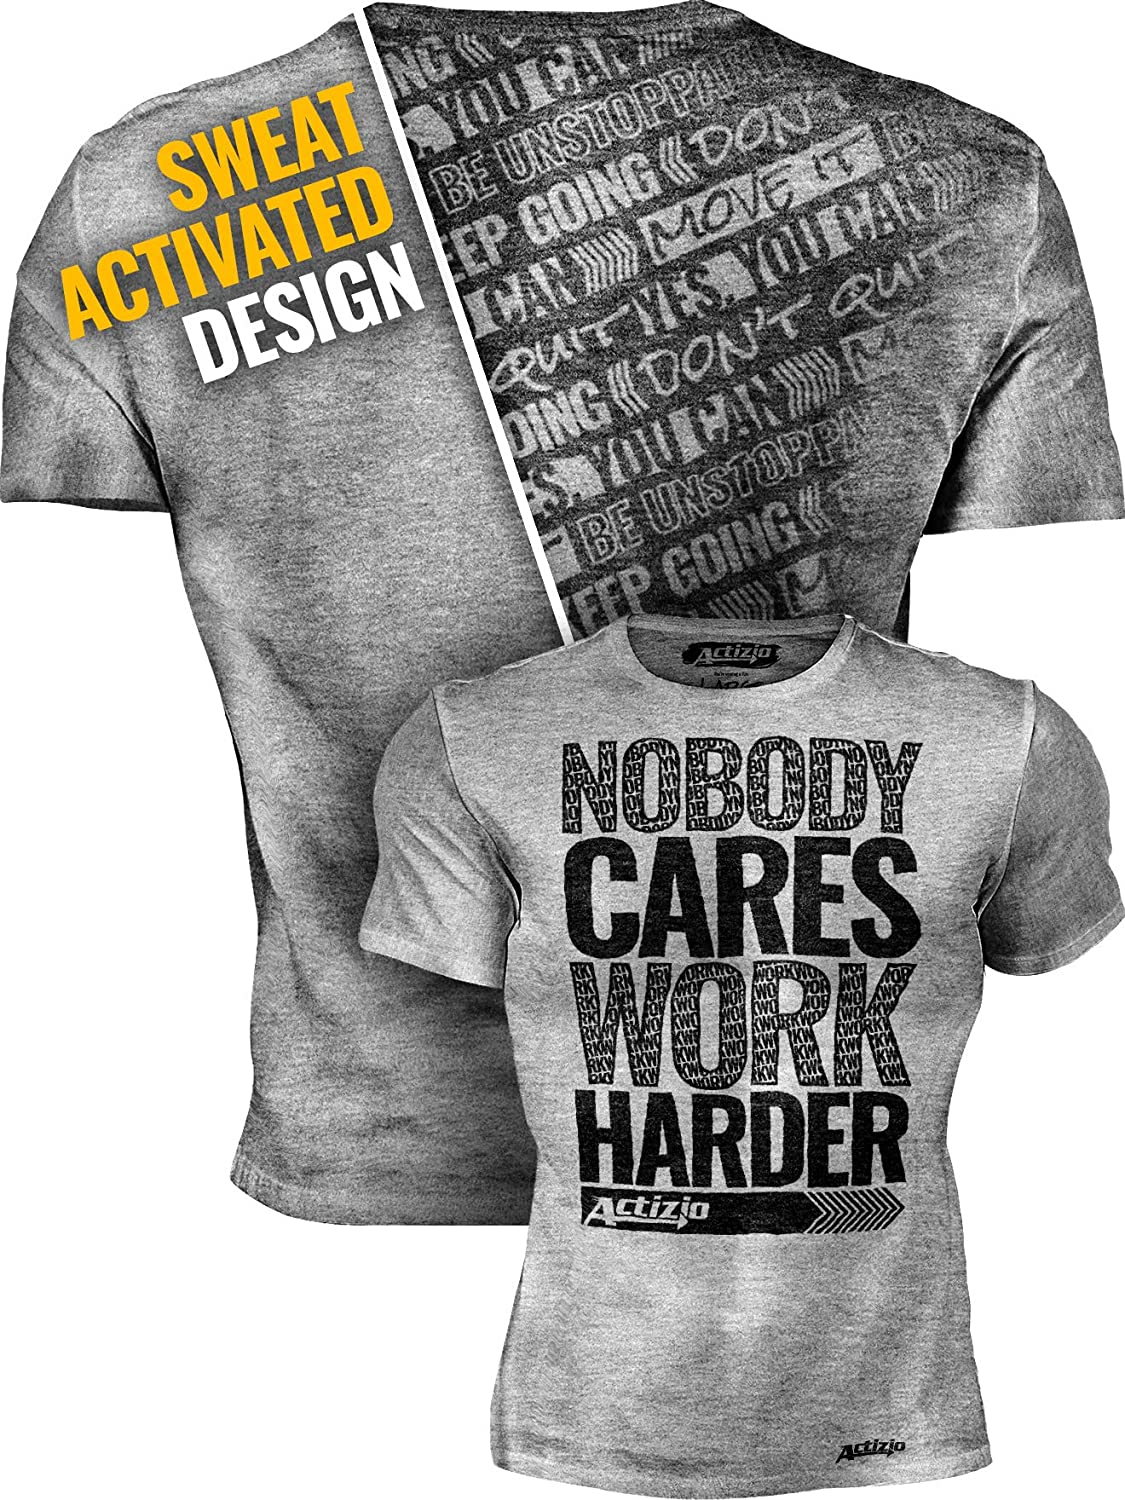 Actizio Sweat Activated Funny Motivational Workout Shirt, Nobody Cares - Work Harder